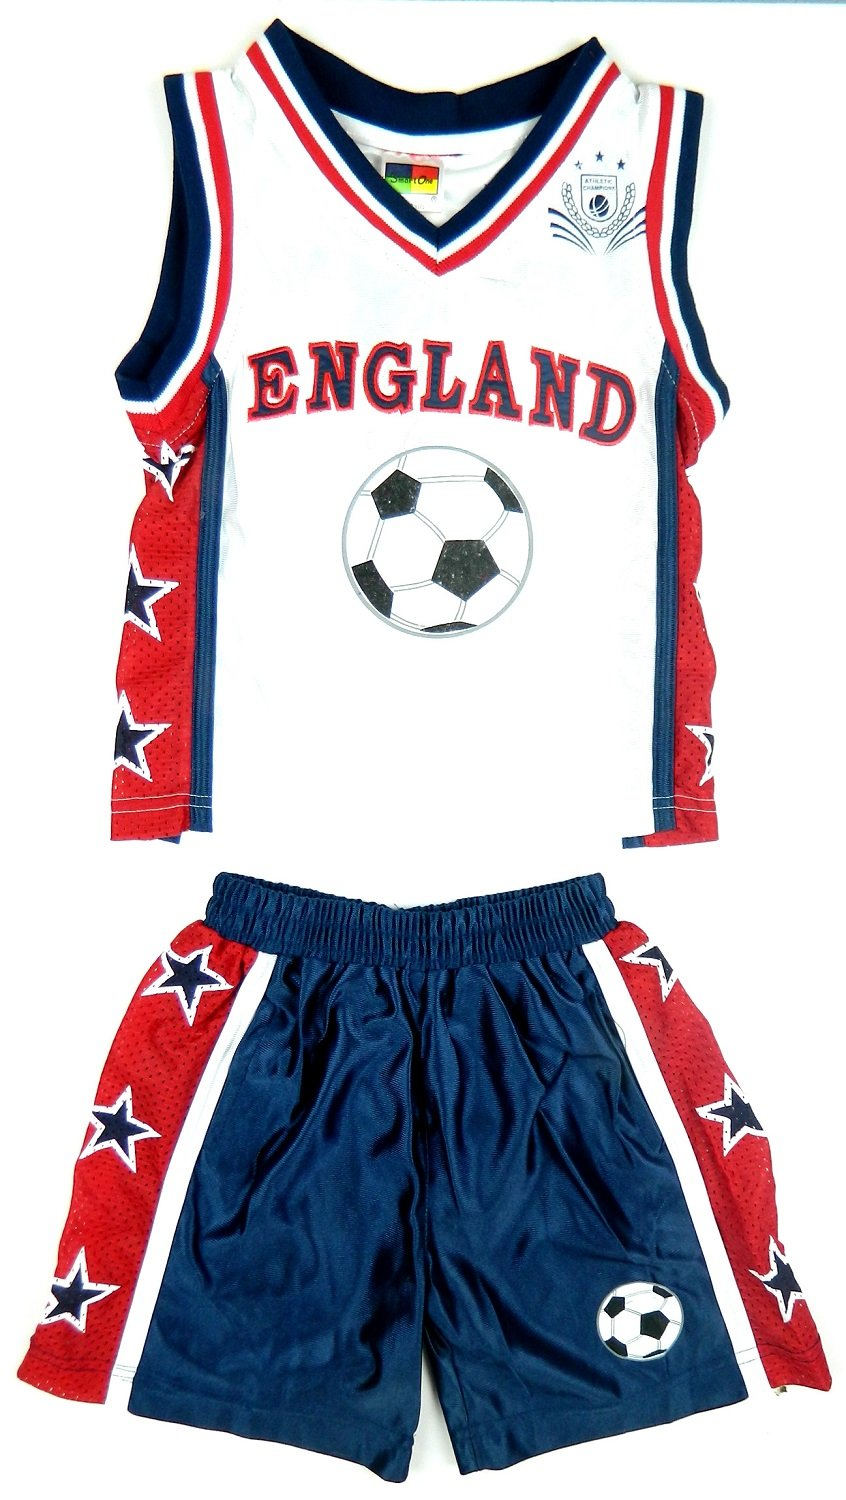 New in Boy's Kid's Sportswear Football ENGLAND Fan Kit Shorts Set in Navy & White and Red & White Set Ages 7- 8, 9-10, 11-12 & 13